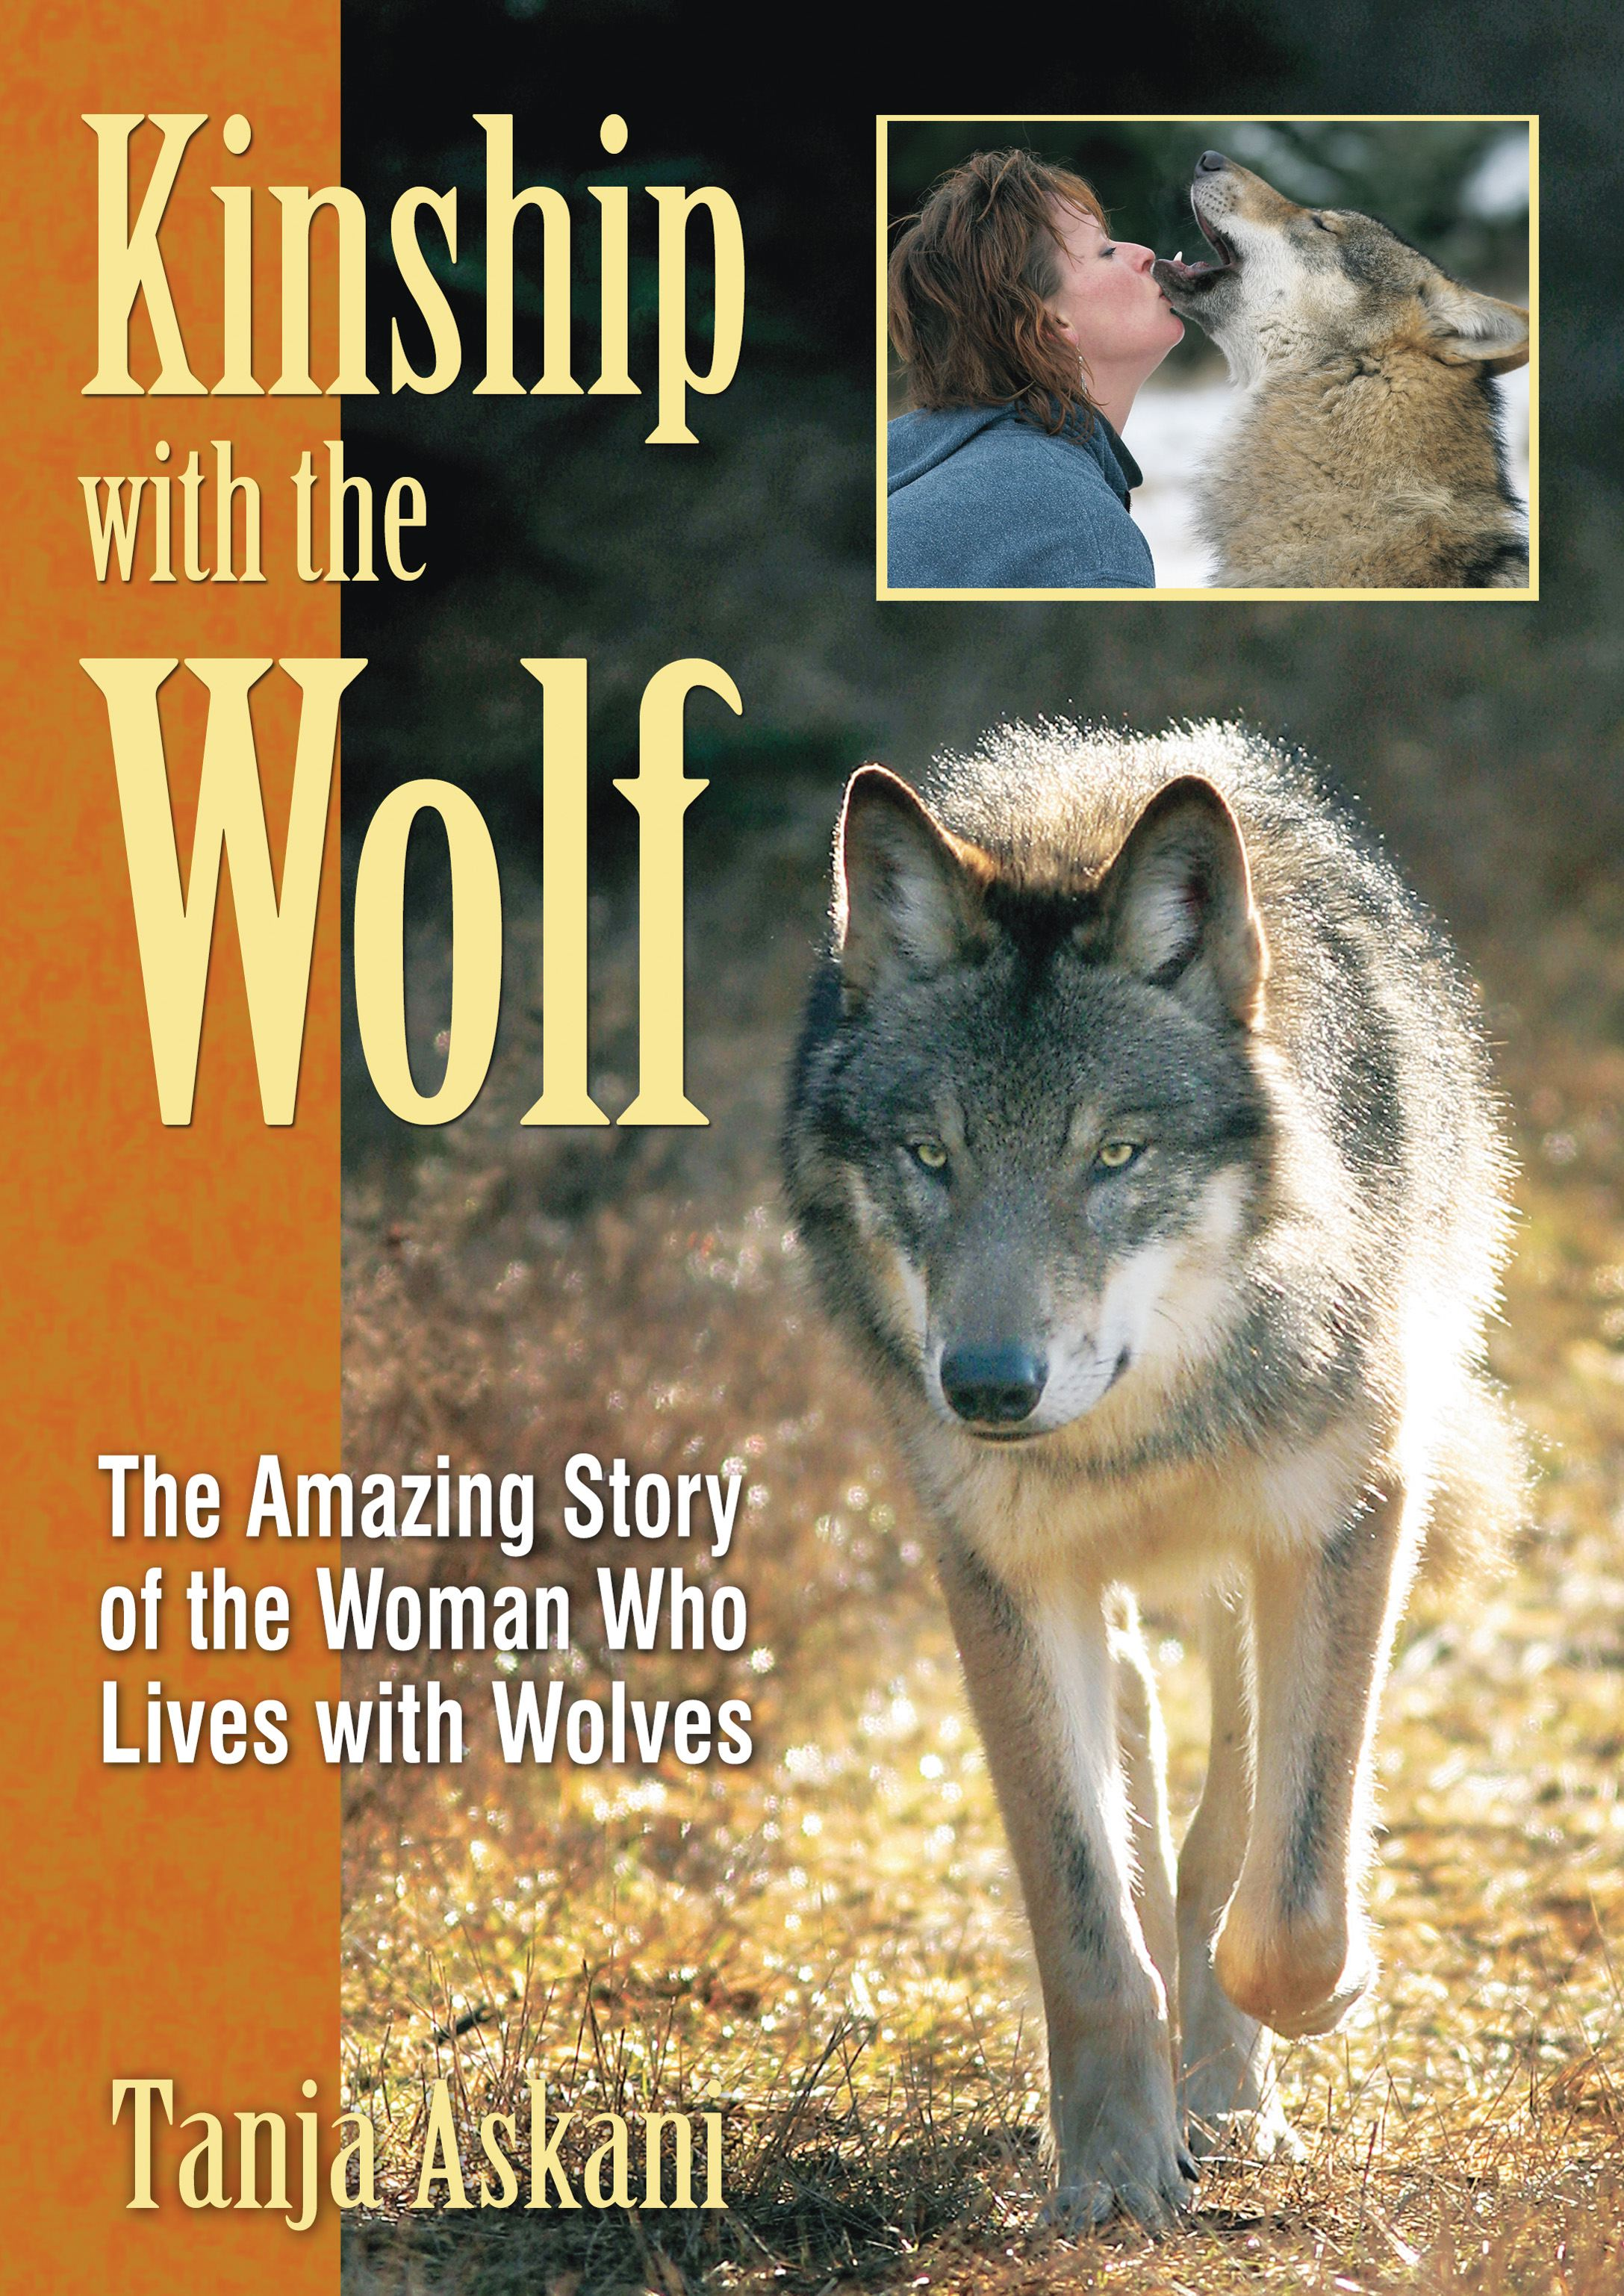 Kinship with the wolf 9781594771309 hr